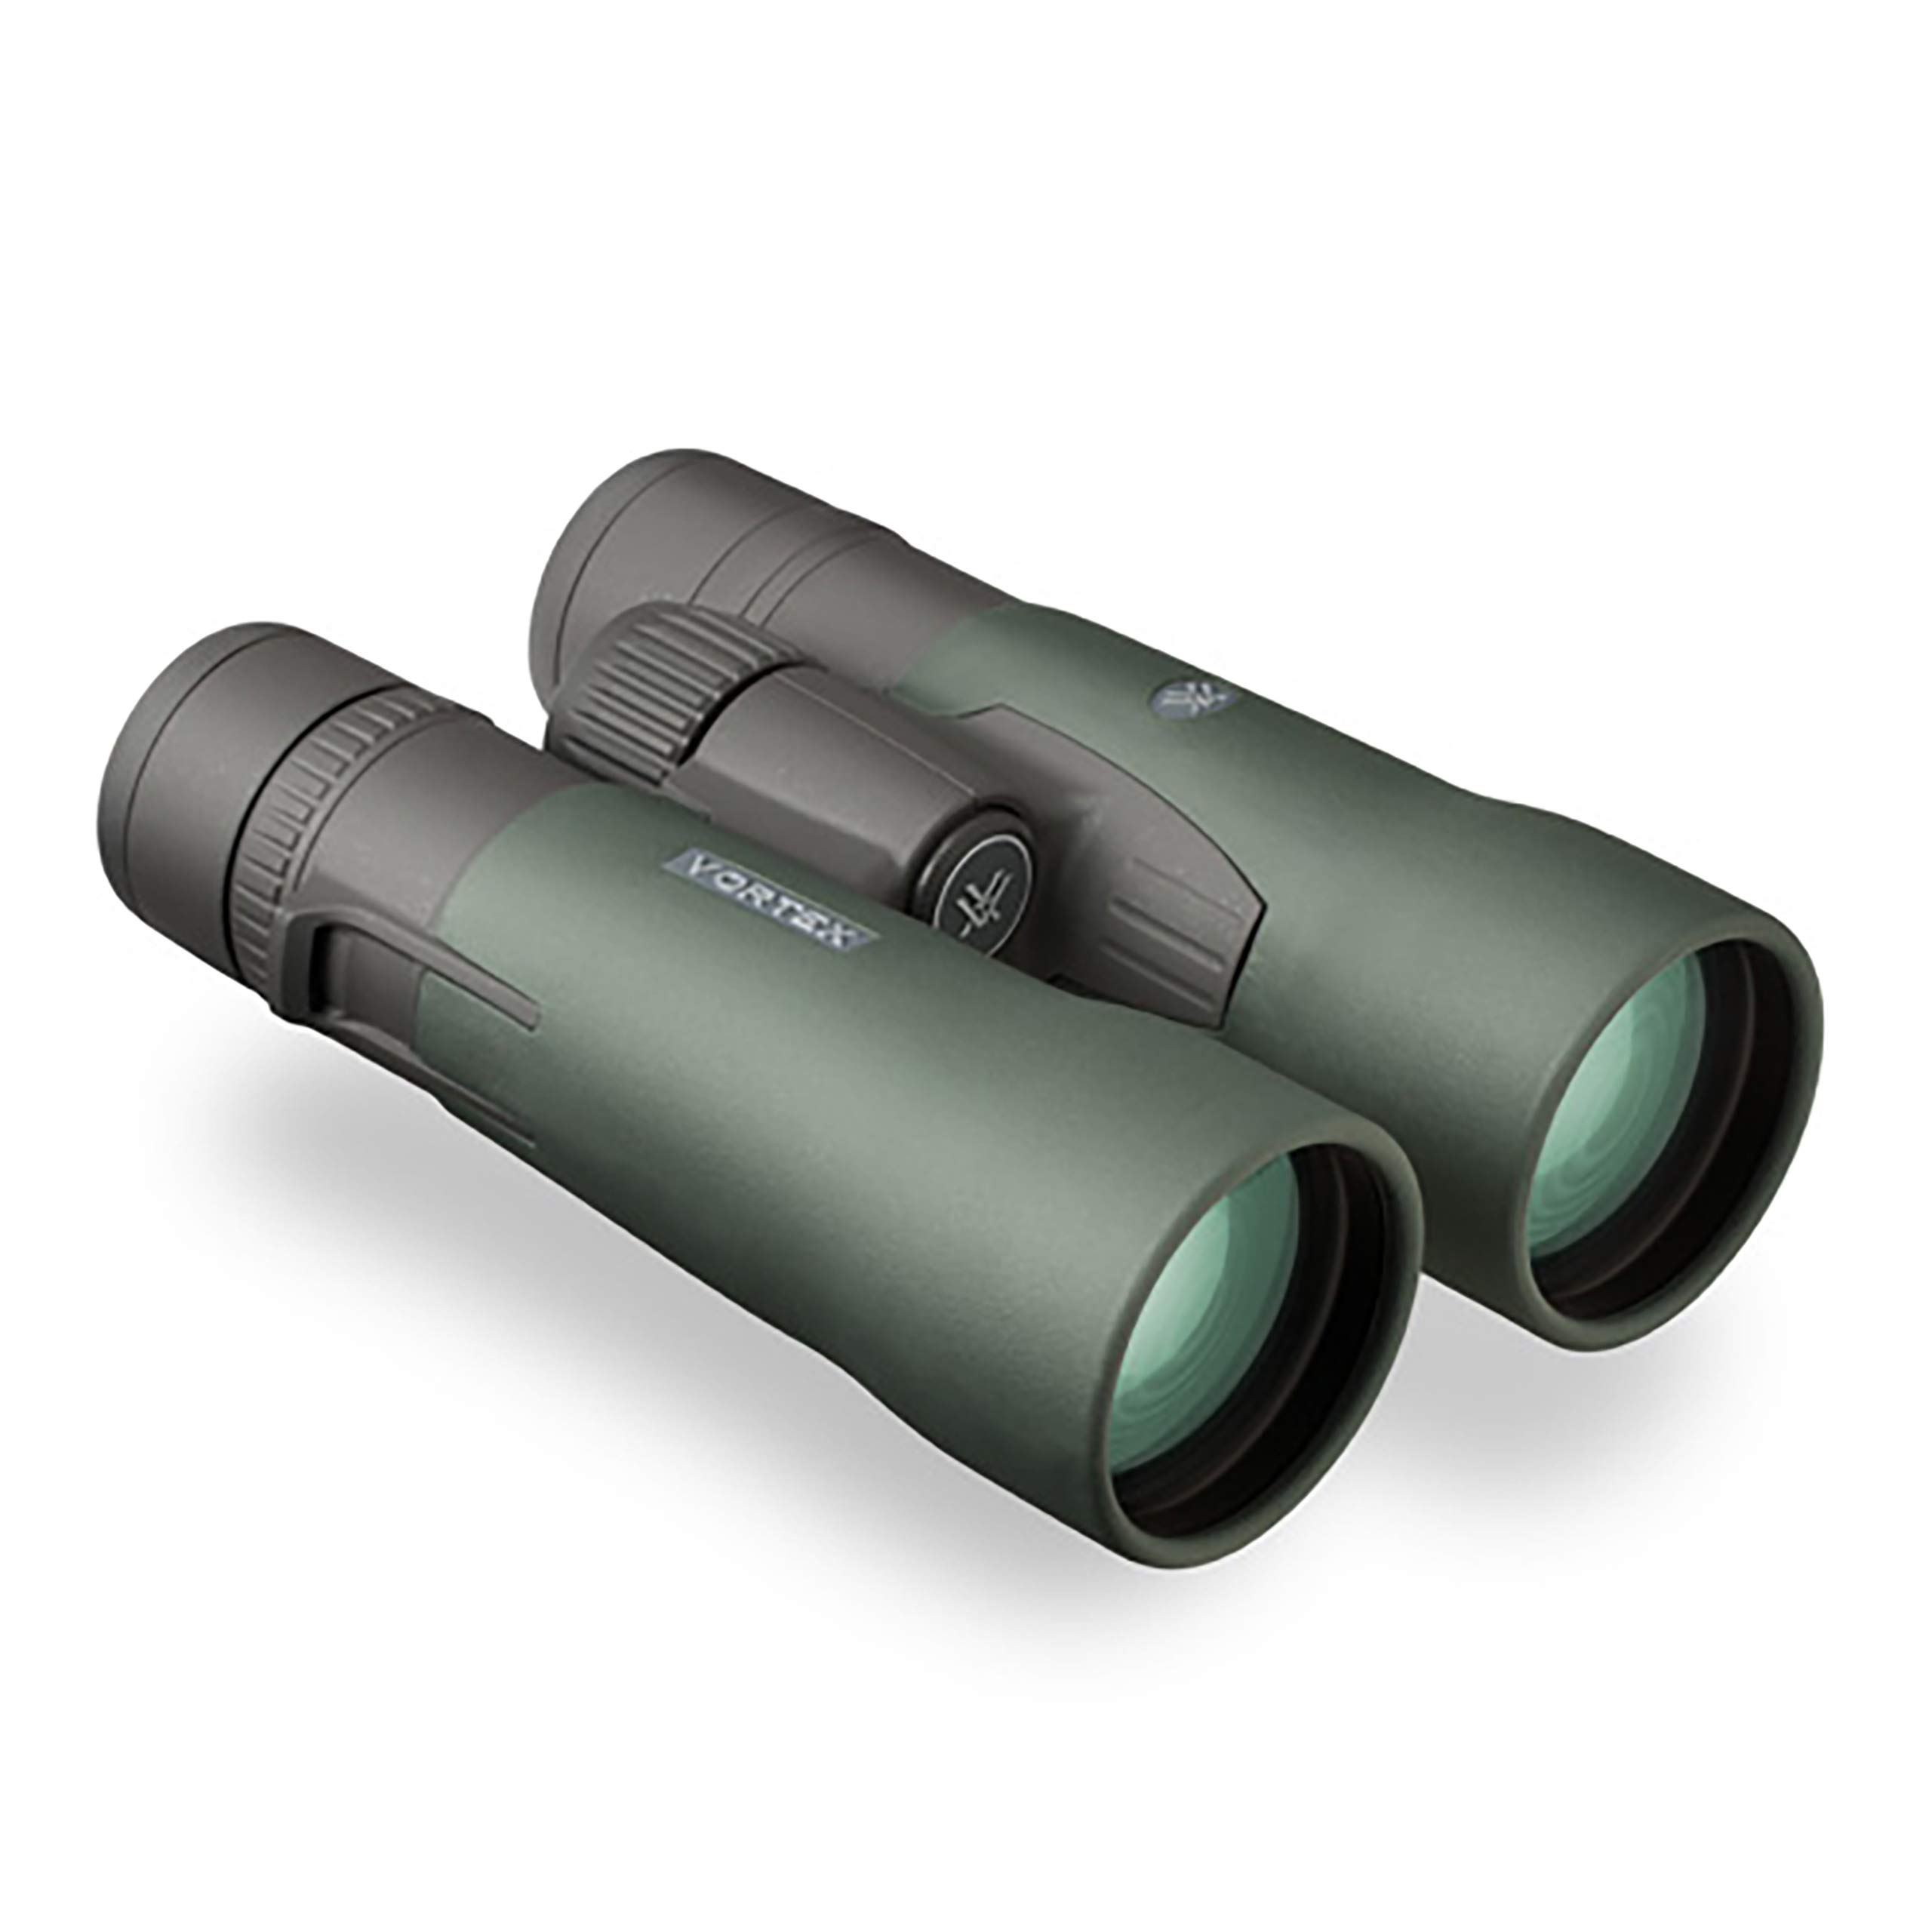 Vortex Optics Razor HD Roof Prism Binoculars 12x50 by Vortex